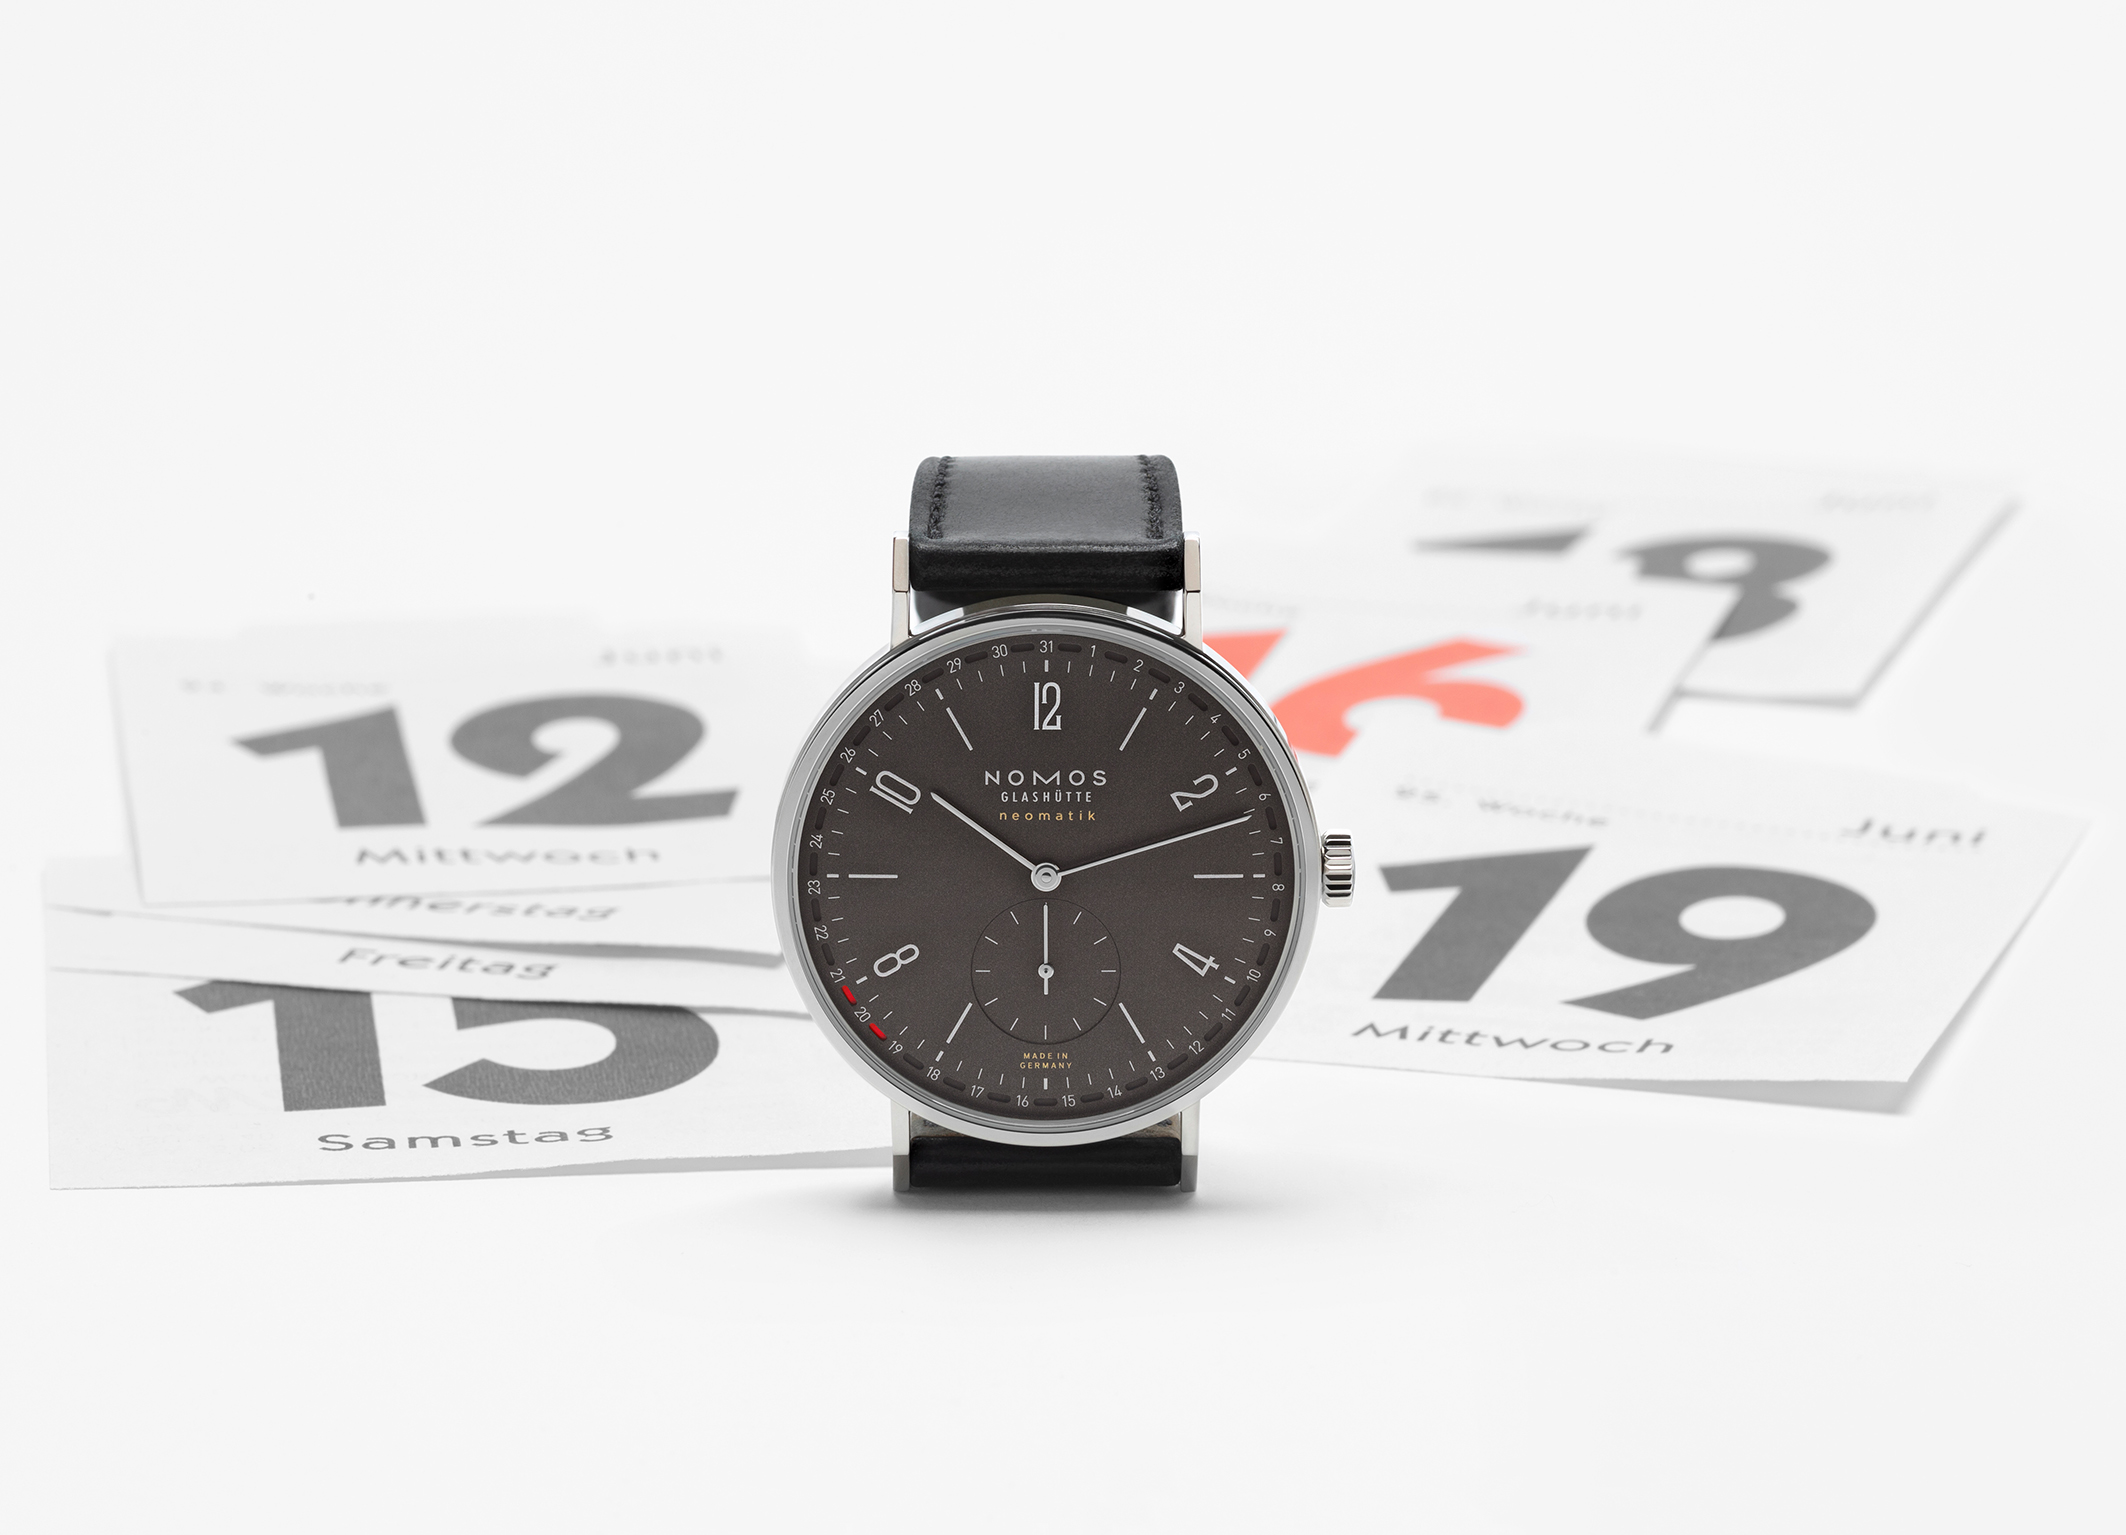 Mood picture of the NOMOS Tangente neomatik update with ruthenium dial.